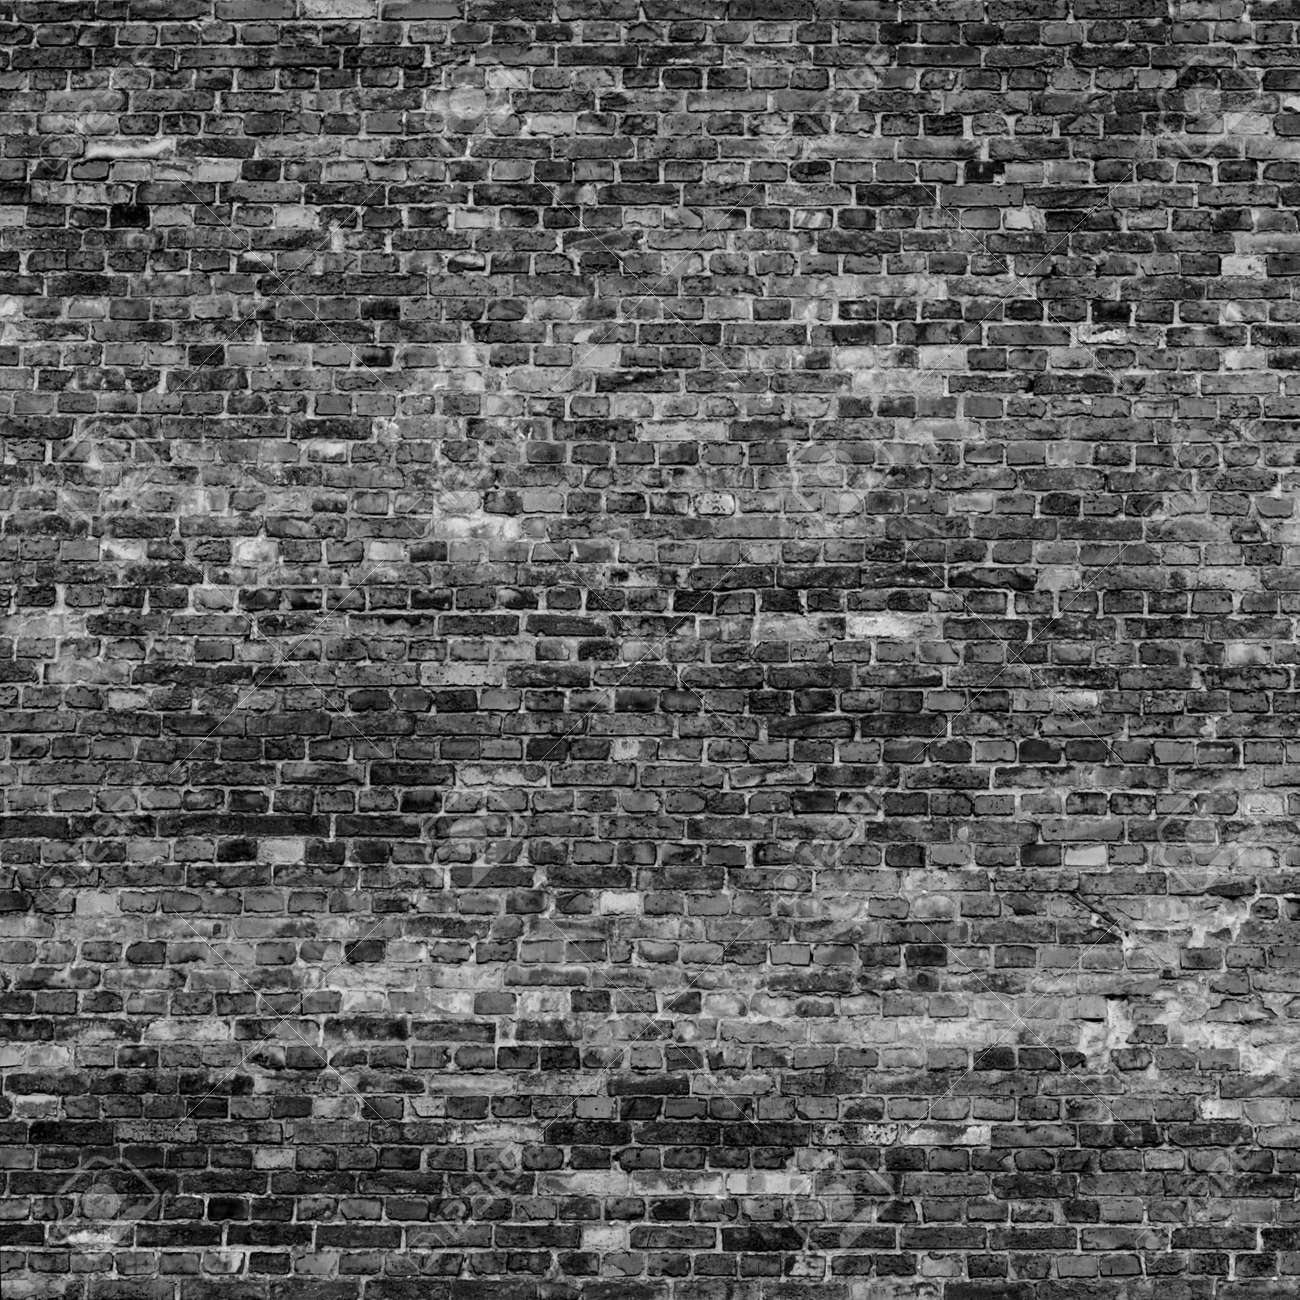 old brick wall texture background in black and white colors